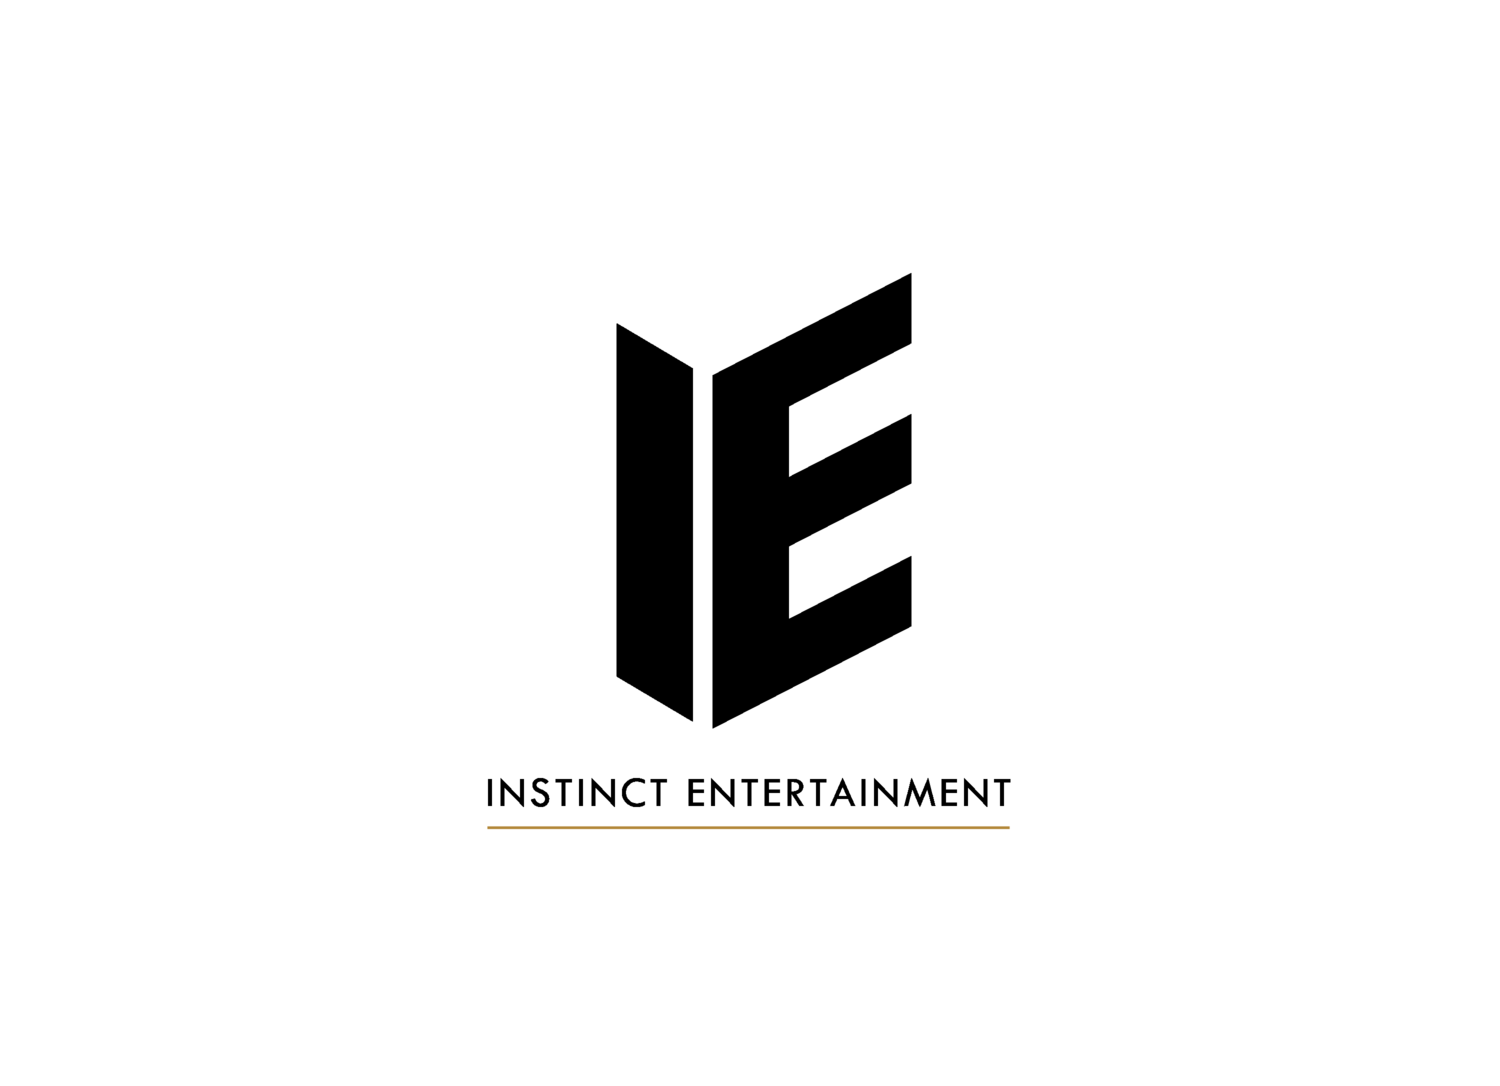 Instinct Entertainment